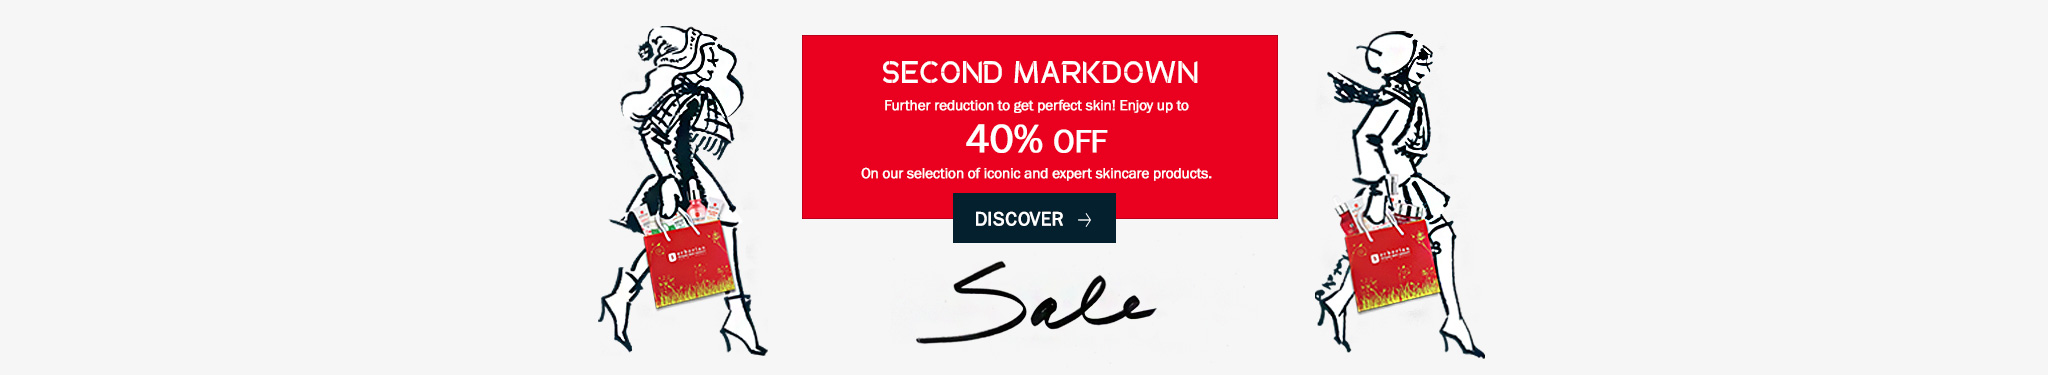 Winter Sale: Special prices on a selection of best sellers for perfect skin